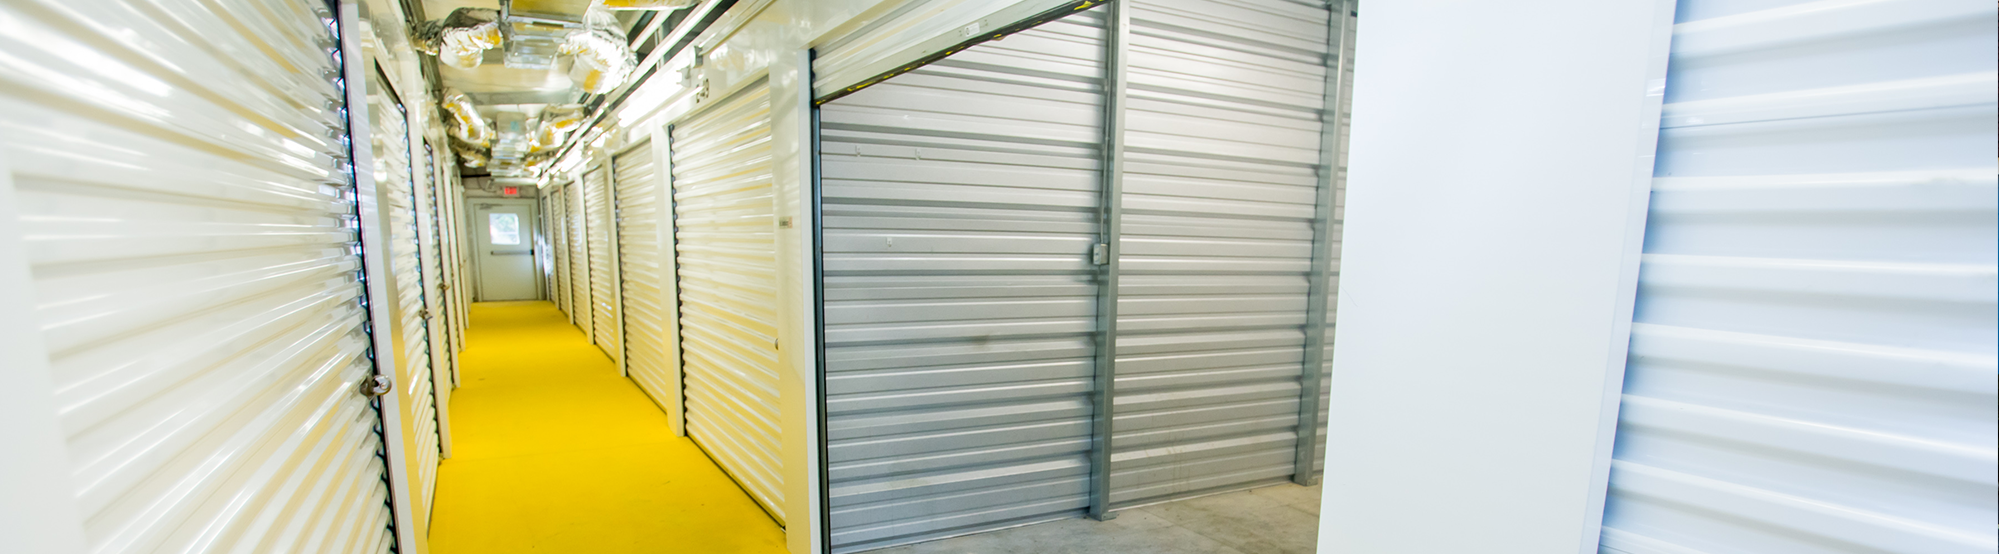 Indoor Climate Control Self Storage in Hartsville SC